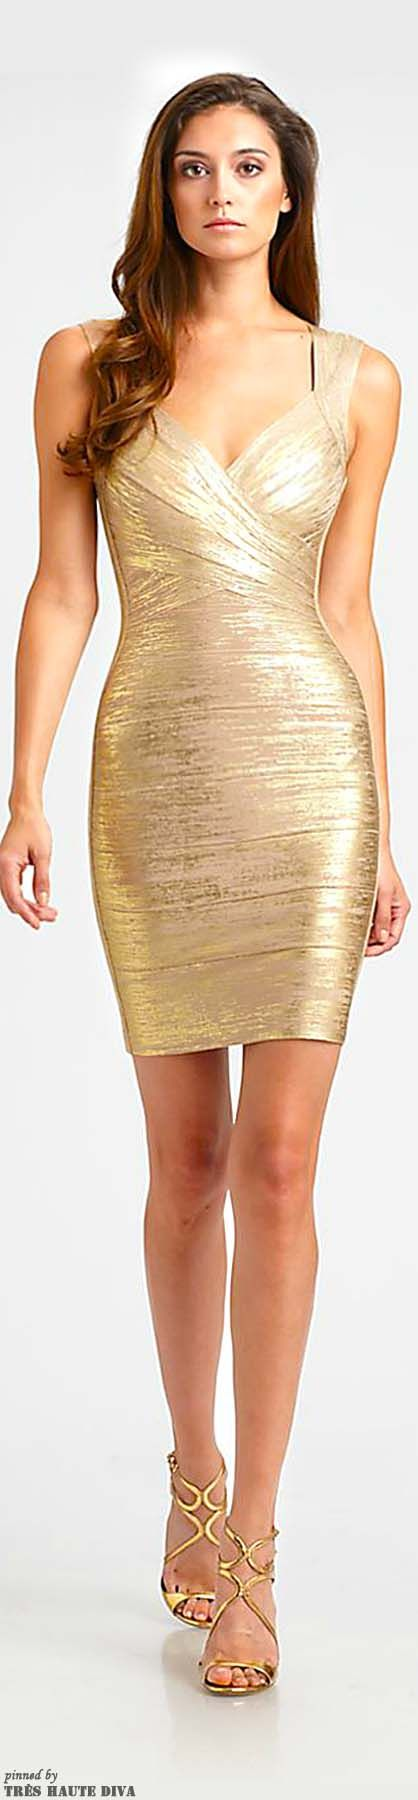 White and Gold Wedding. Mother of the Bride. Mother of the Groom. Herve Leger Metallic Bandage Dress